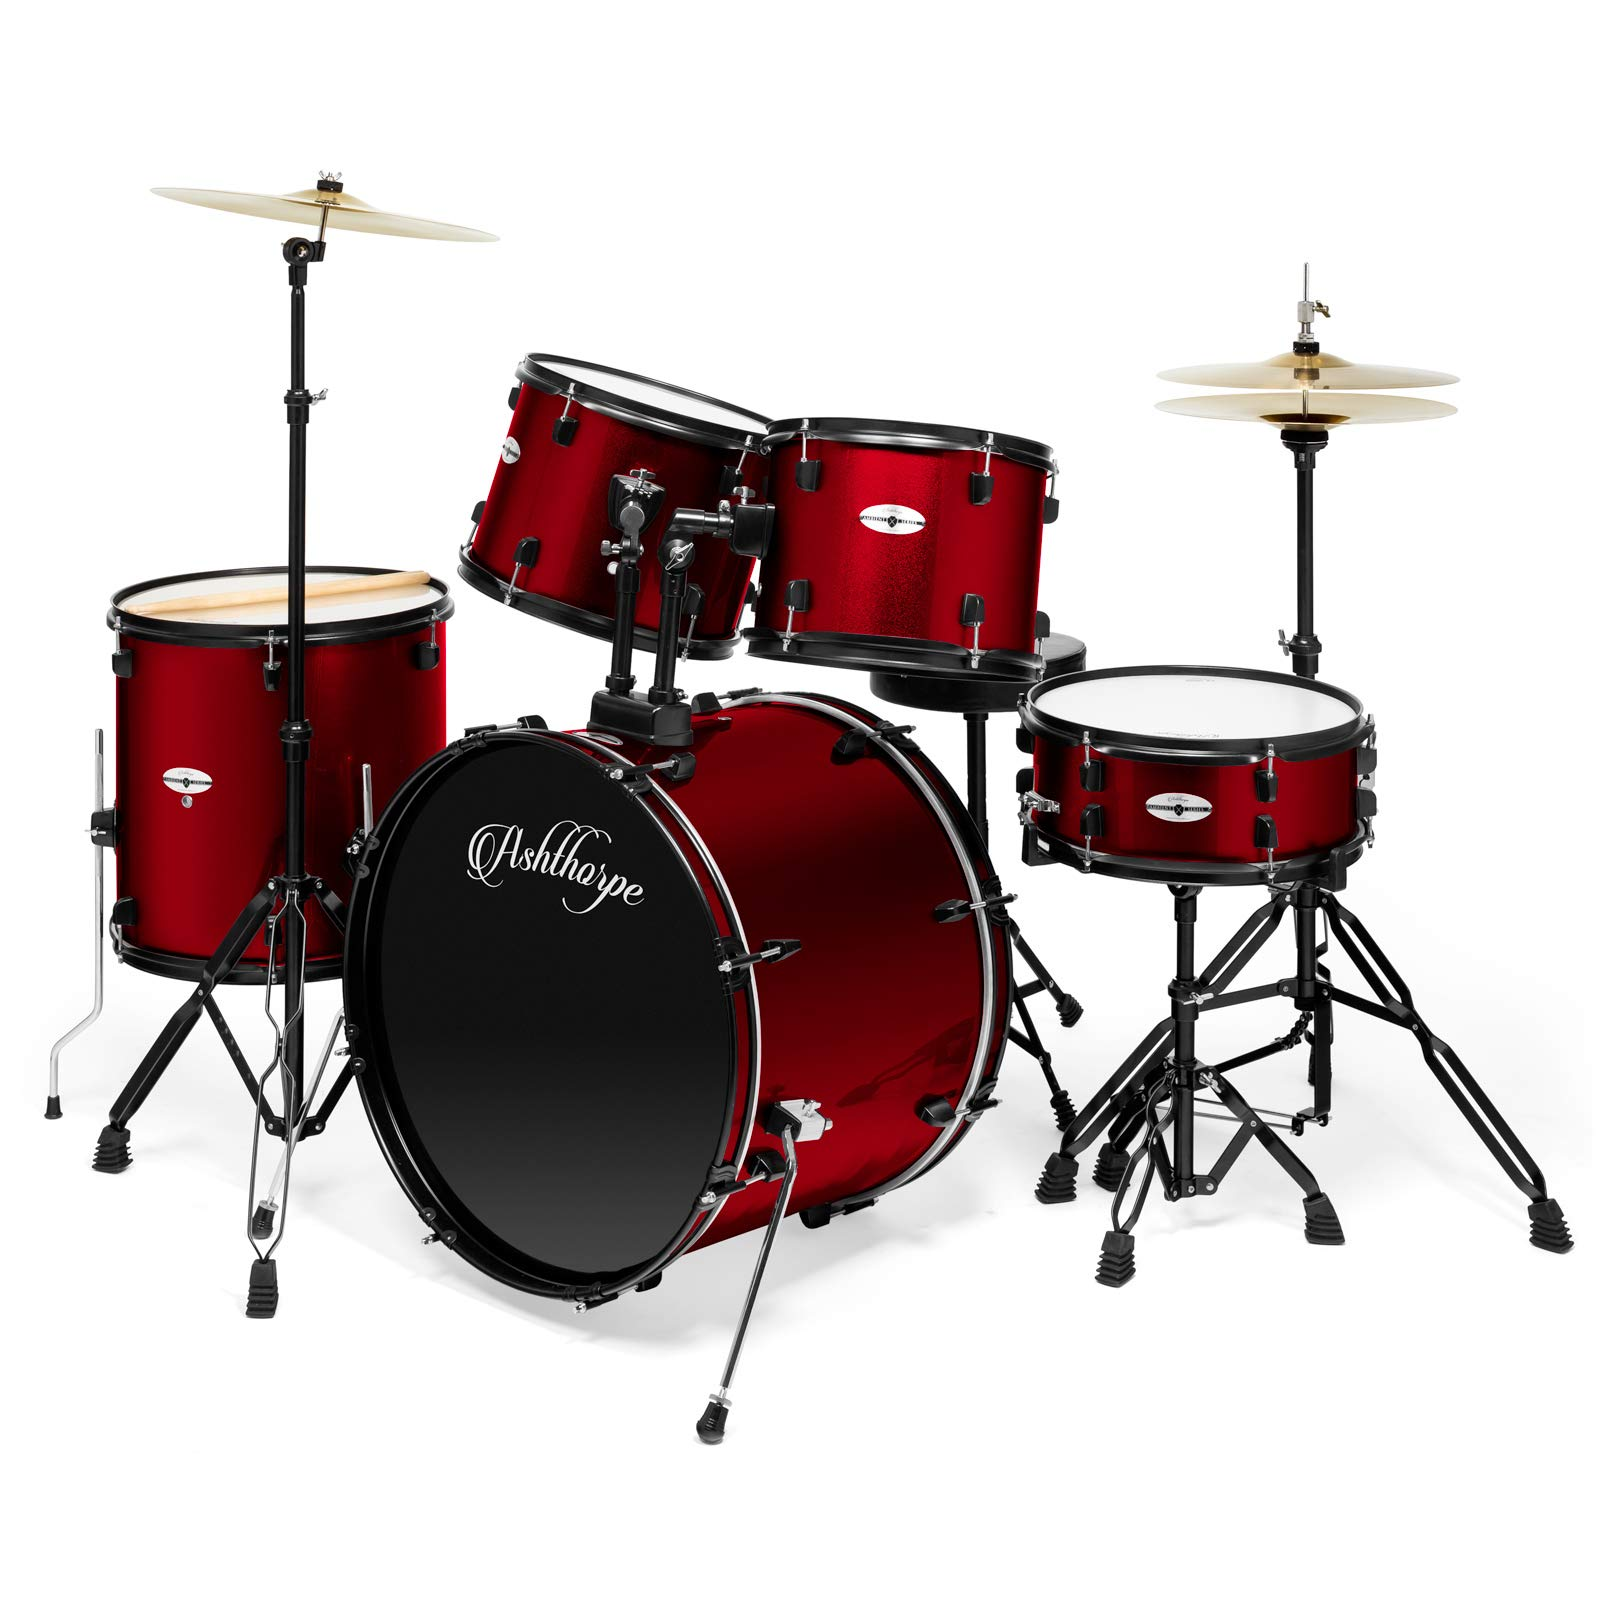 Ashthorpe 5-Piece Complete Full Size Adult Drum Set with Remo Batter Heads - Red by Ashthorpe